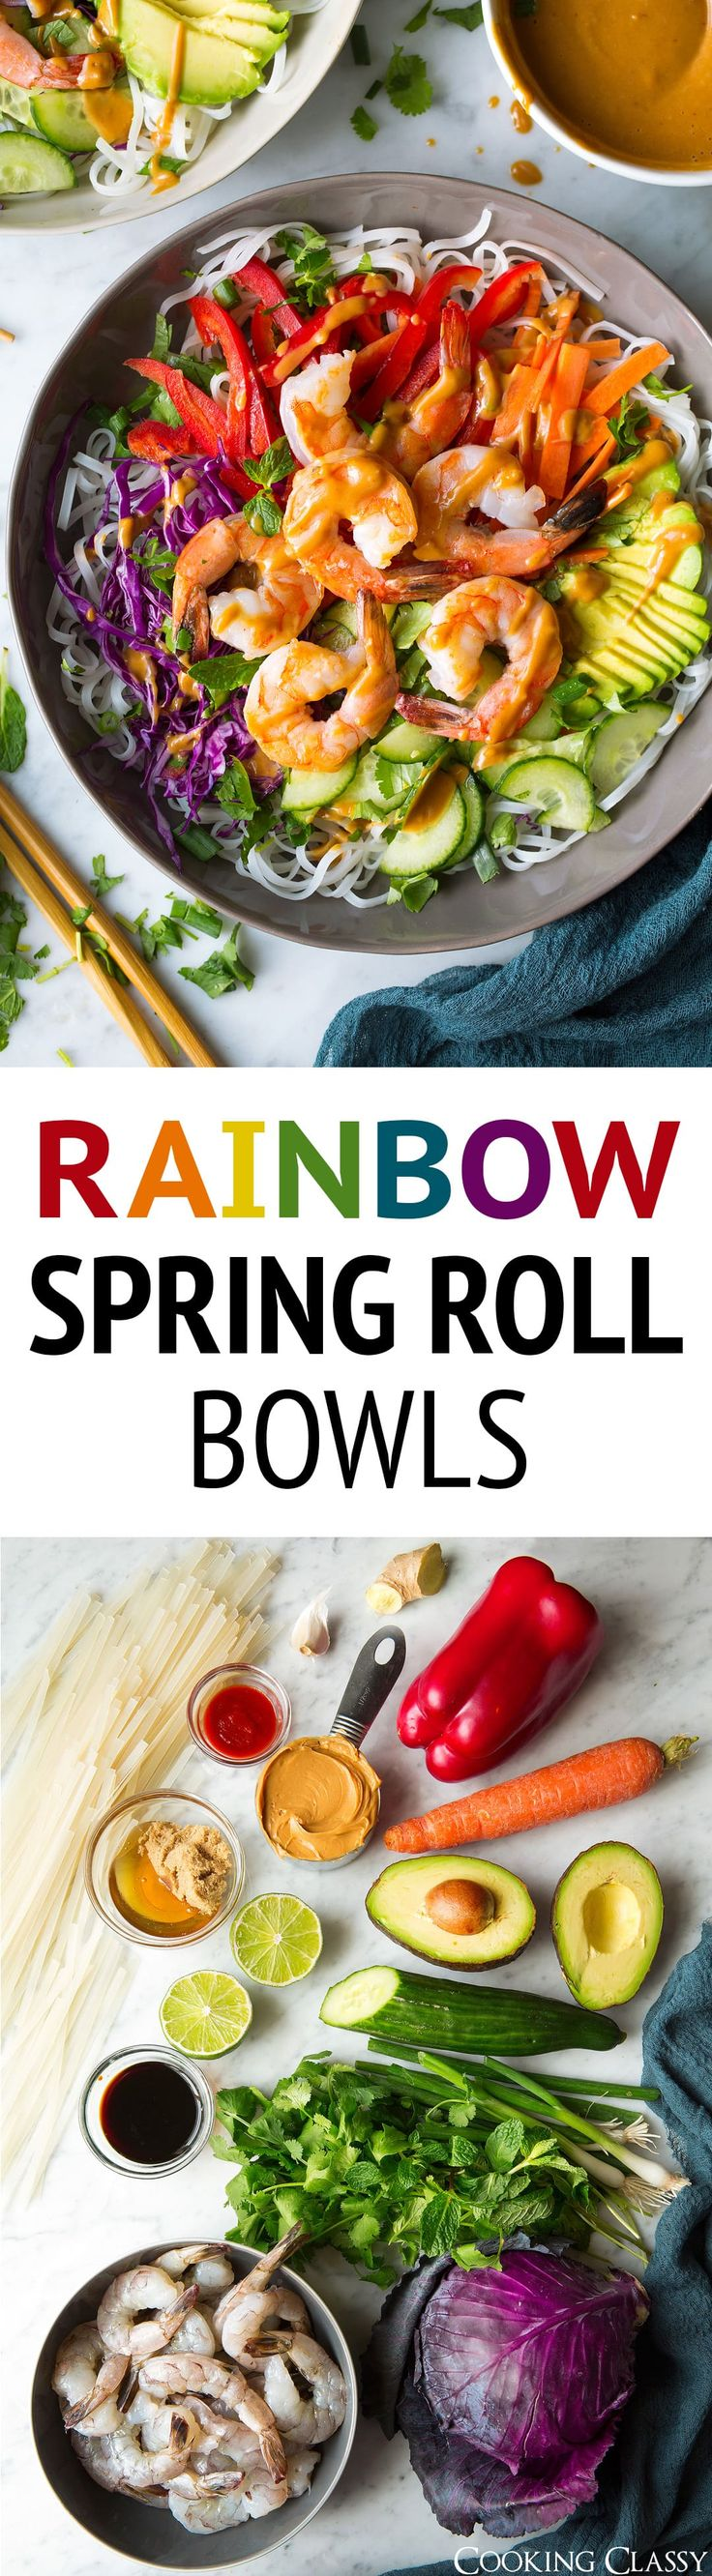 Rainbow Spring Roll Bowls with Peanut Sauce via @cookingclassy